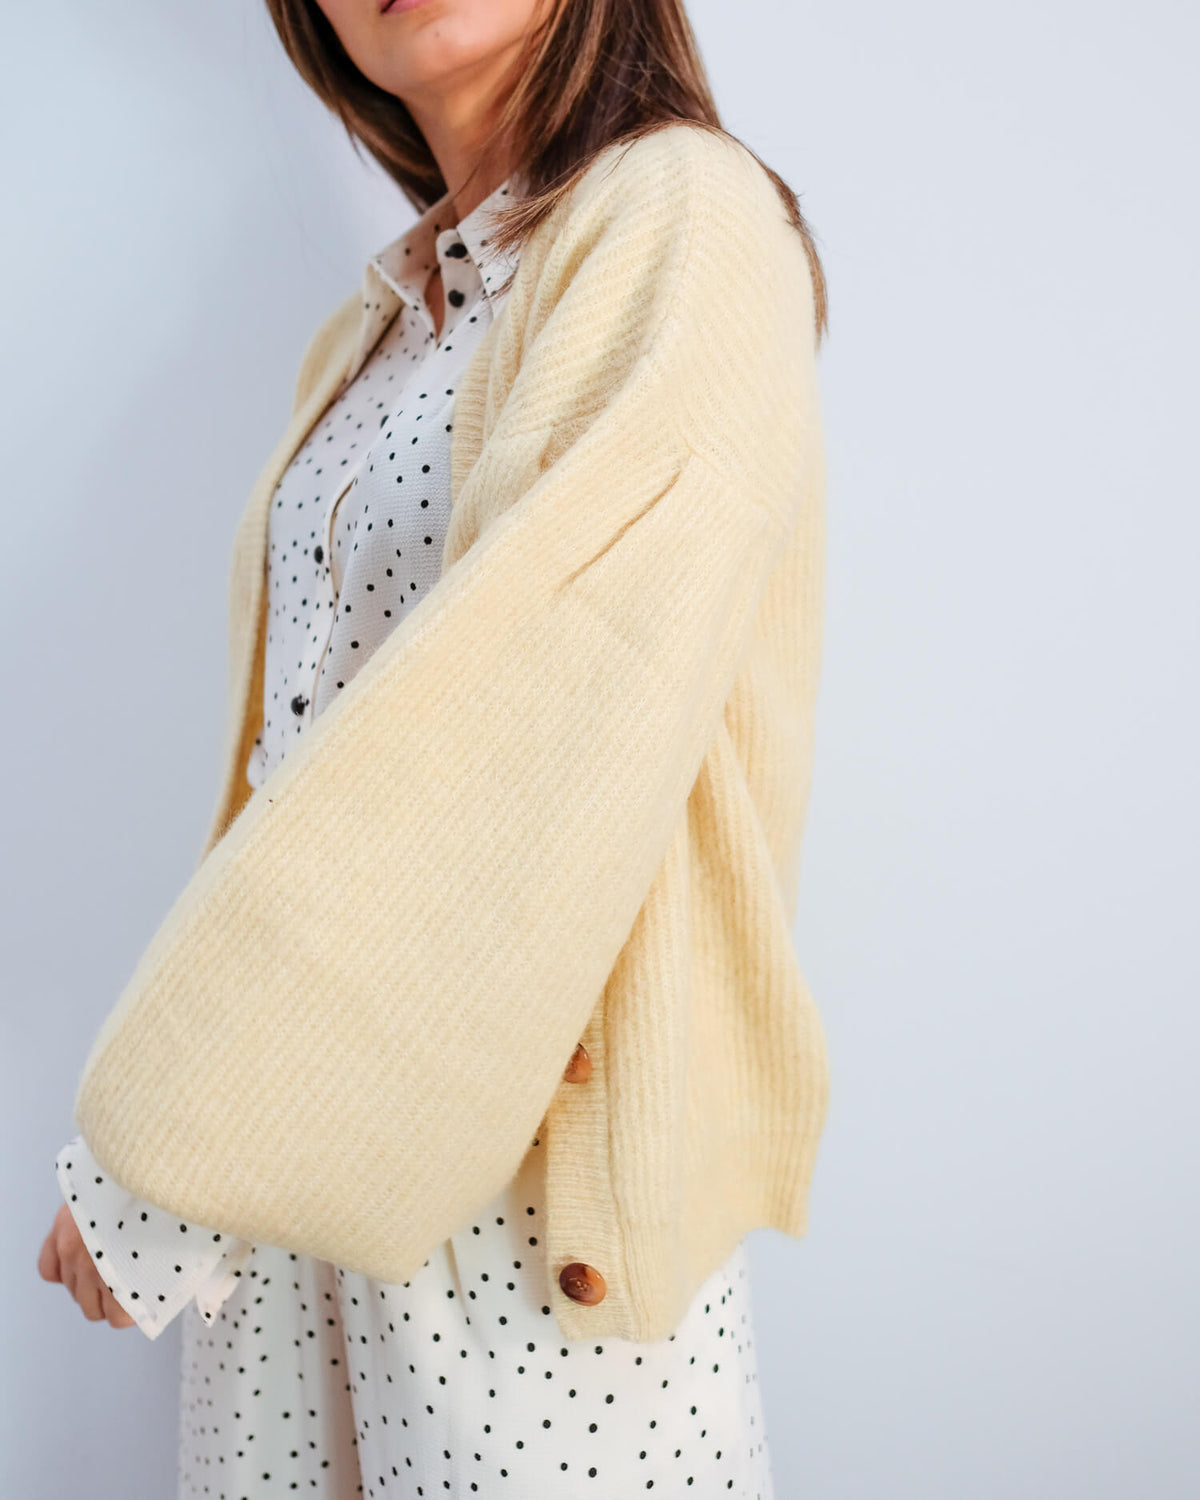 BUP Celine knit cardi in straw yellow